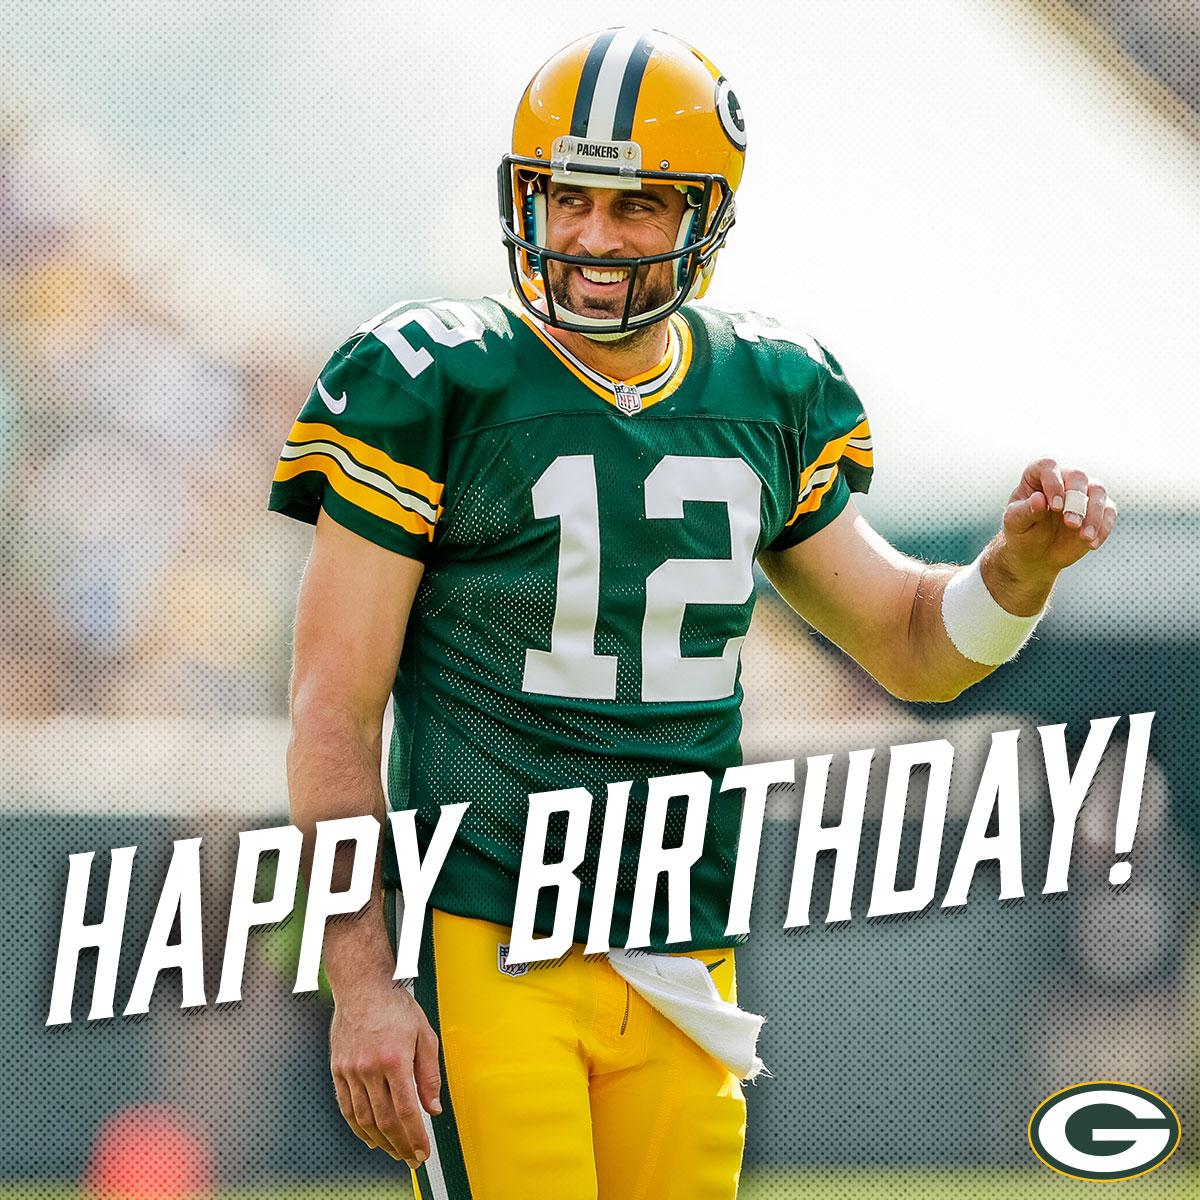 🎉 RT to wish #Packers QB @AaronRodgers12 a happy birthday!! 🎉 🎂